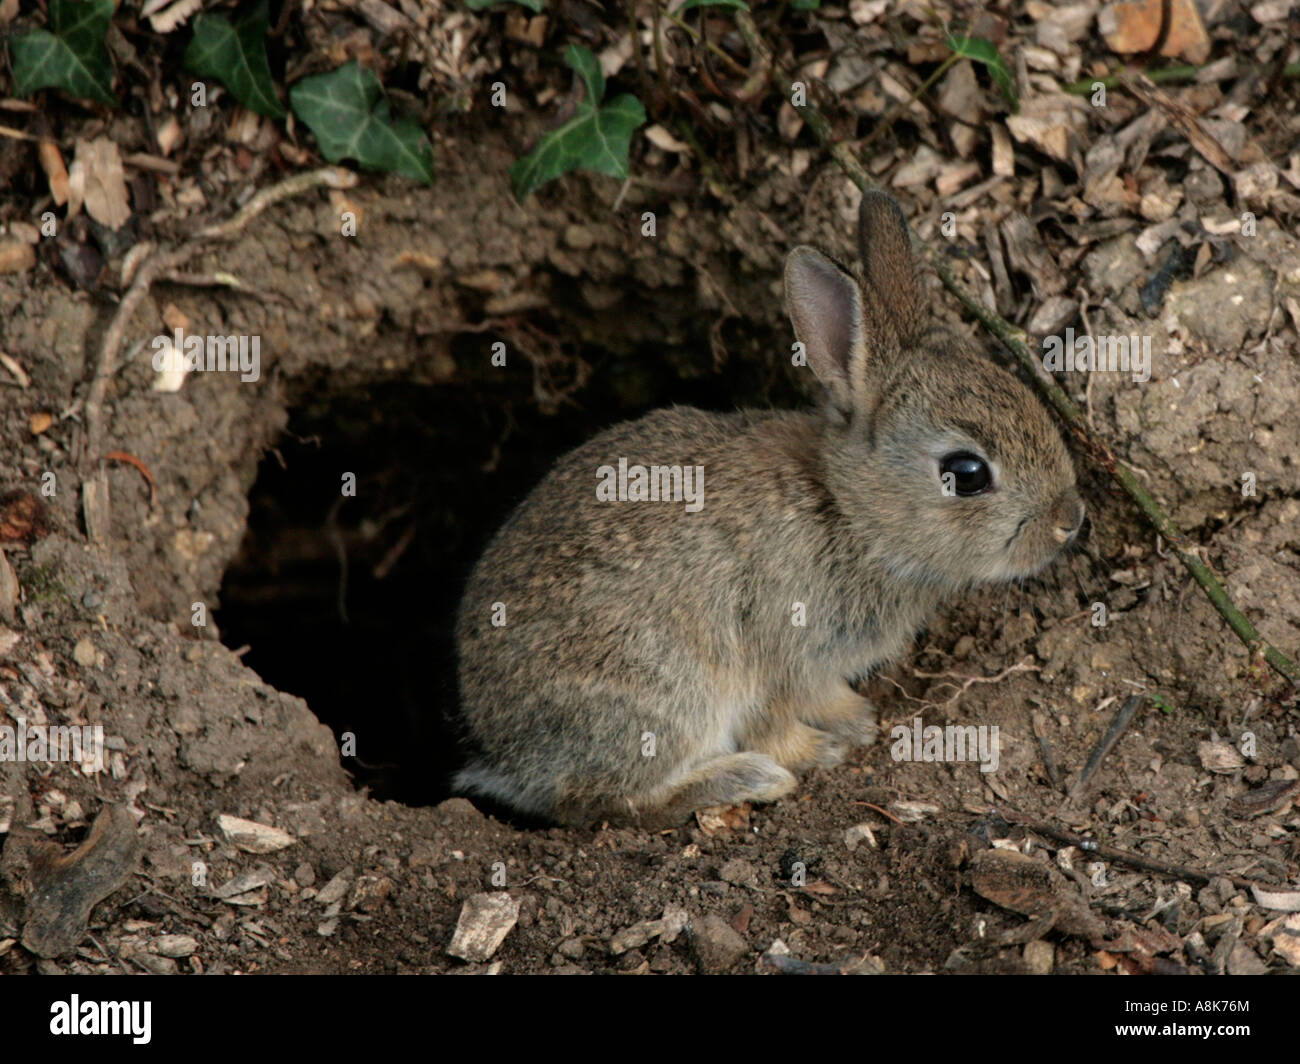 a young wild rabbit in front of its burrow stock photo 12123067 alamy